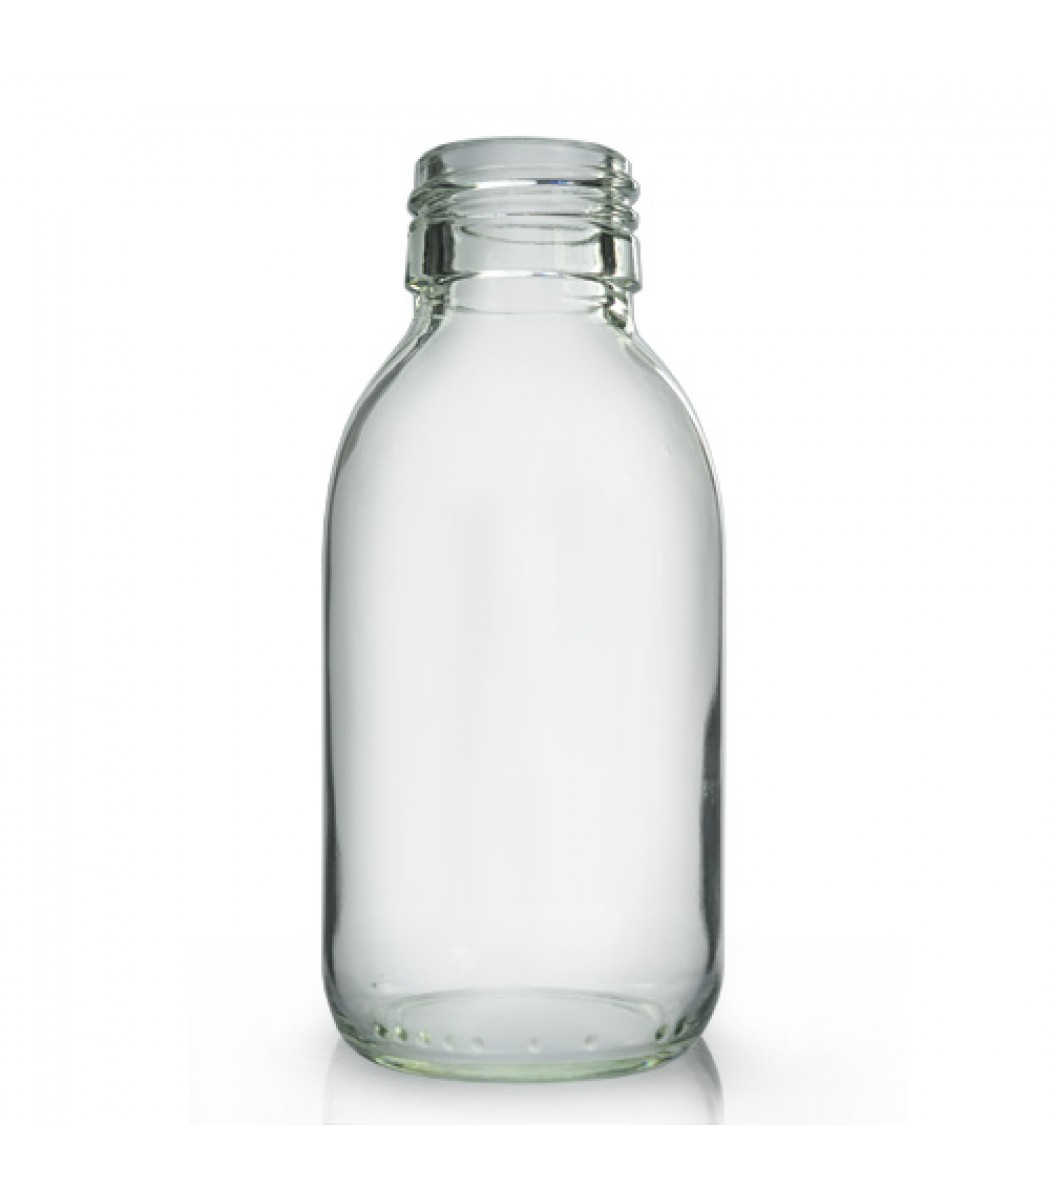 Ml Glass Bottles Screw Top